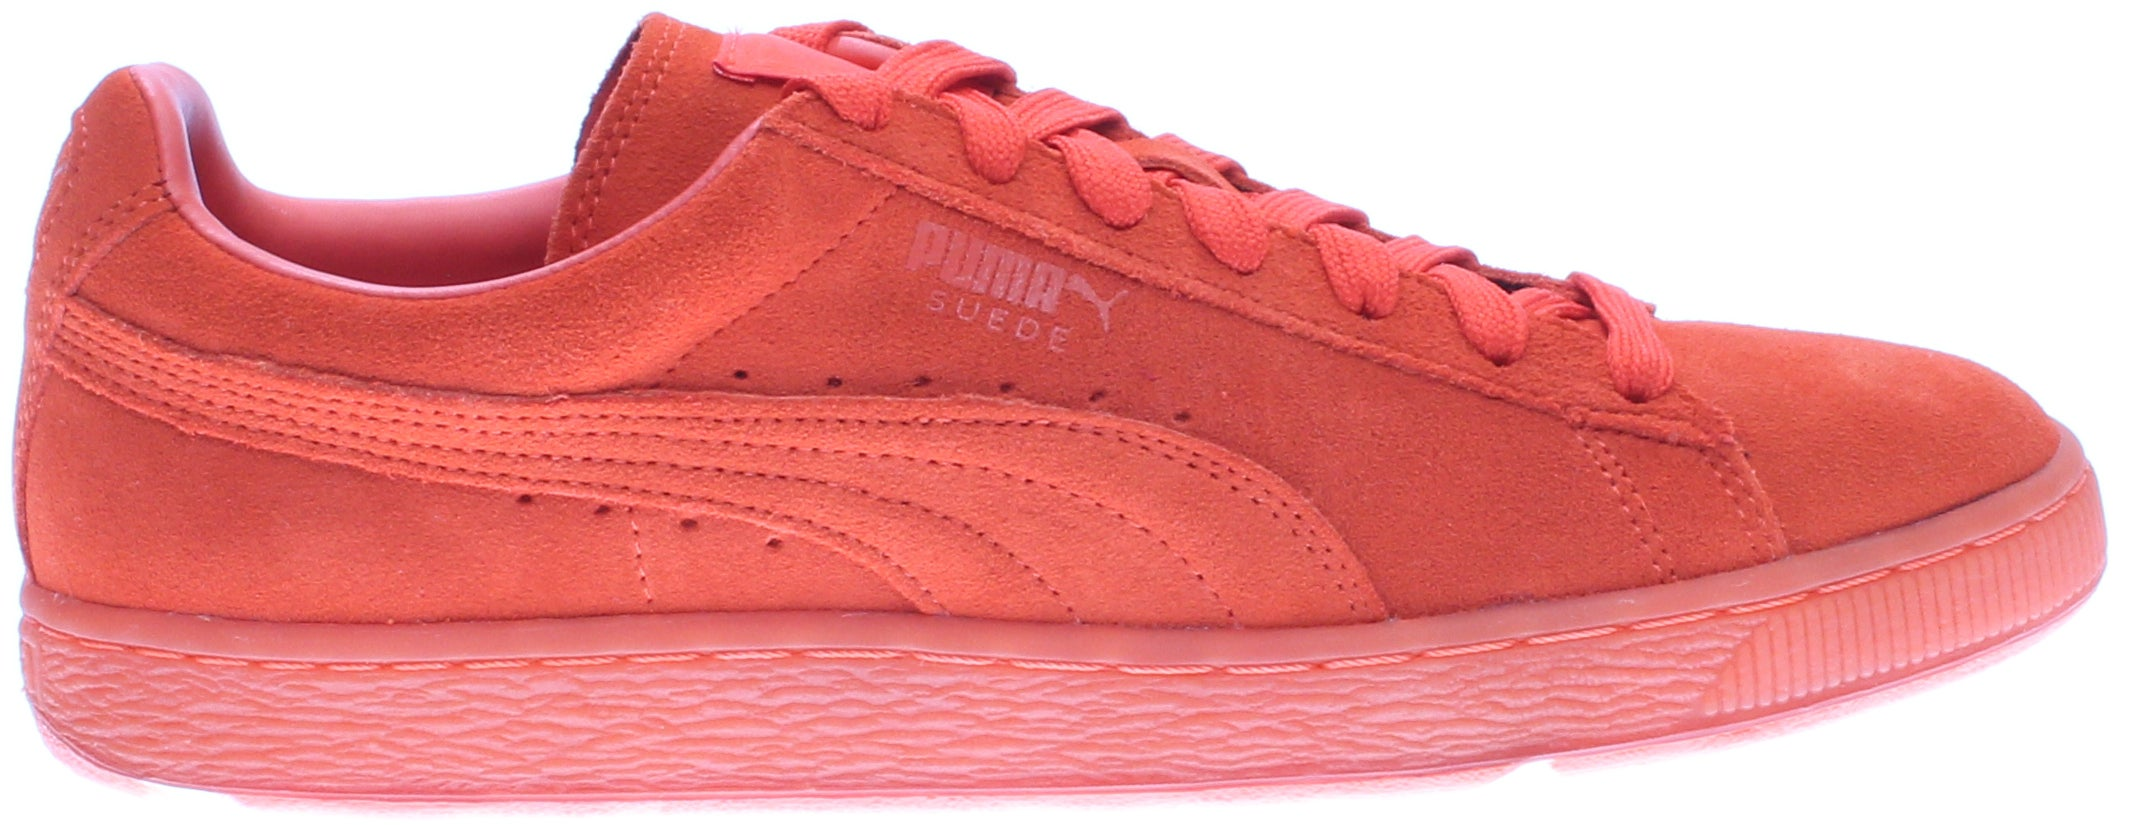 competencia Cesta Favor  puma hip hop shoes reduced 10c37 8418c